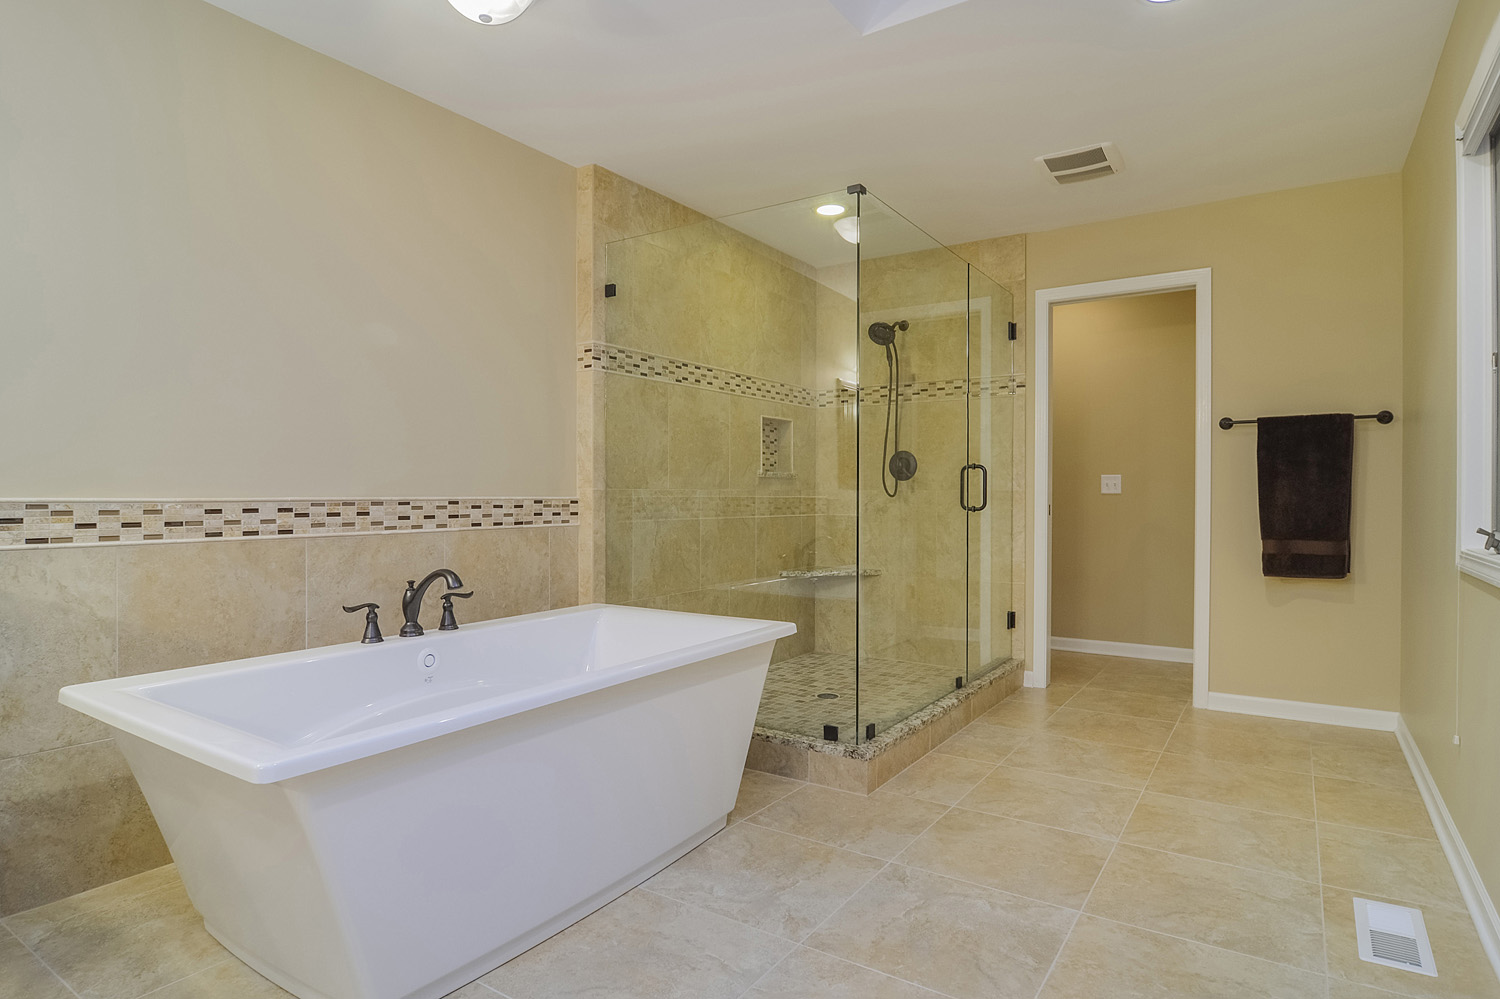 Bernard karan 39 s master bathroom remodel pictures home for Bathroom ideas with quartz